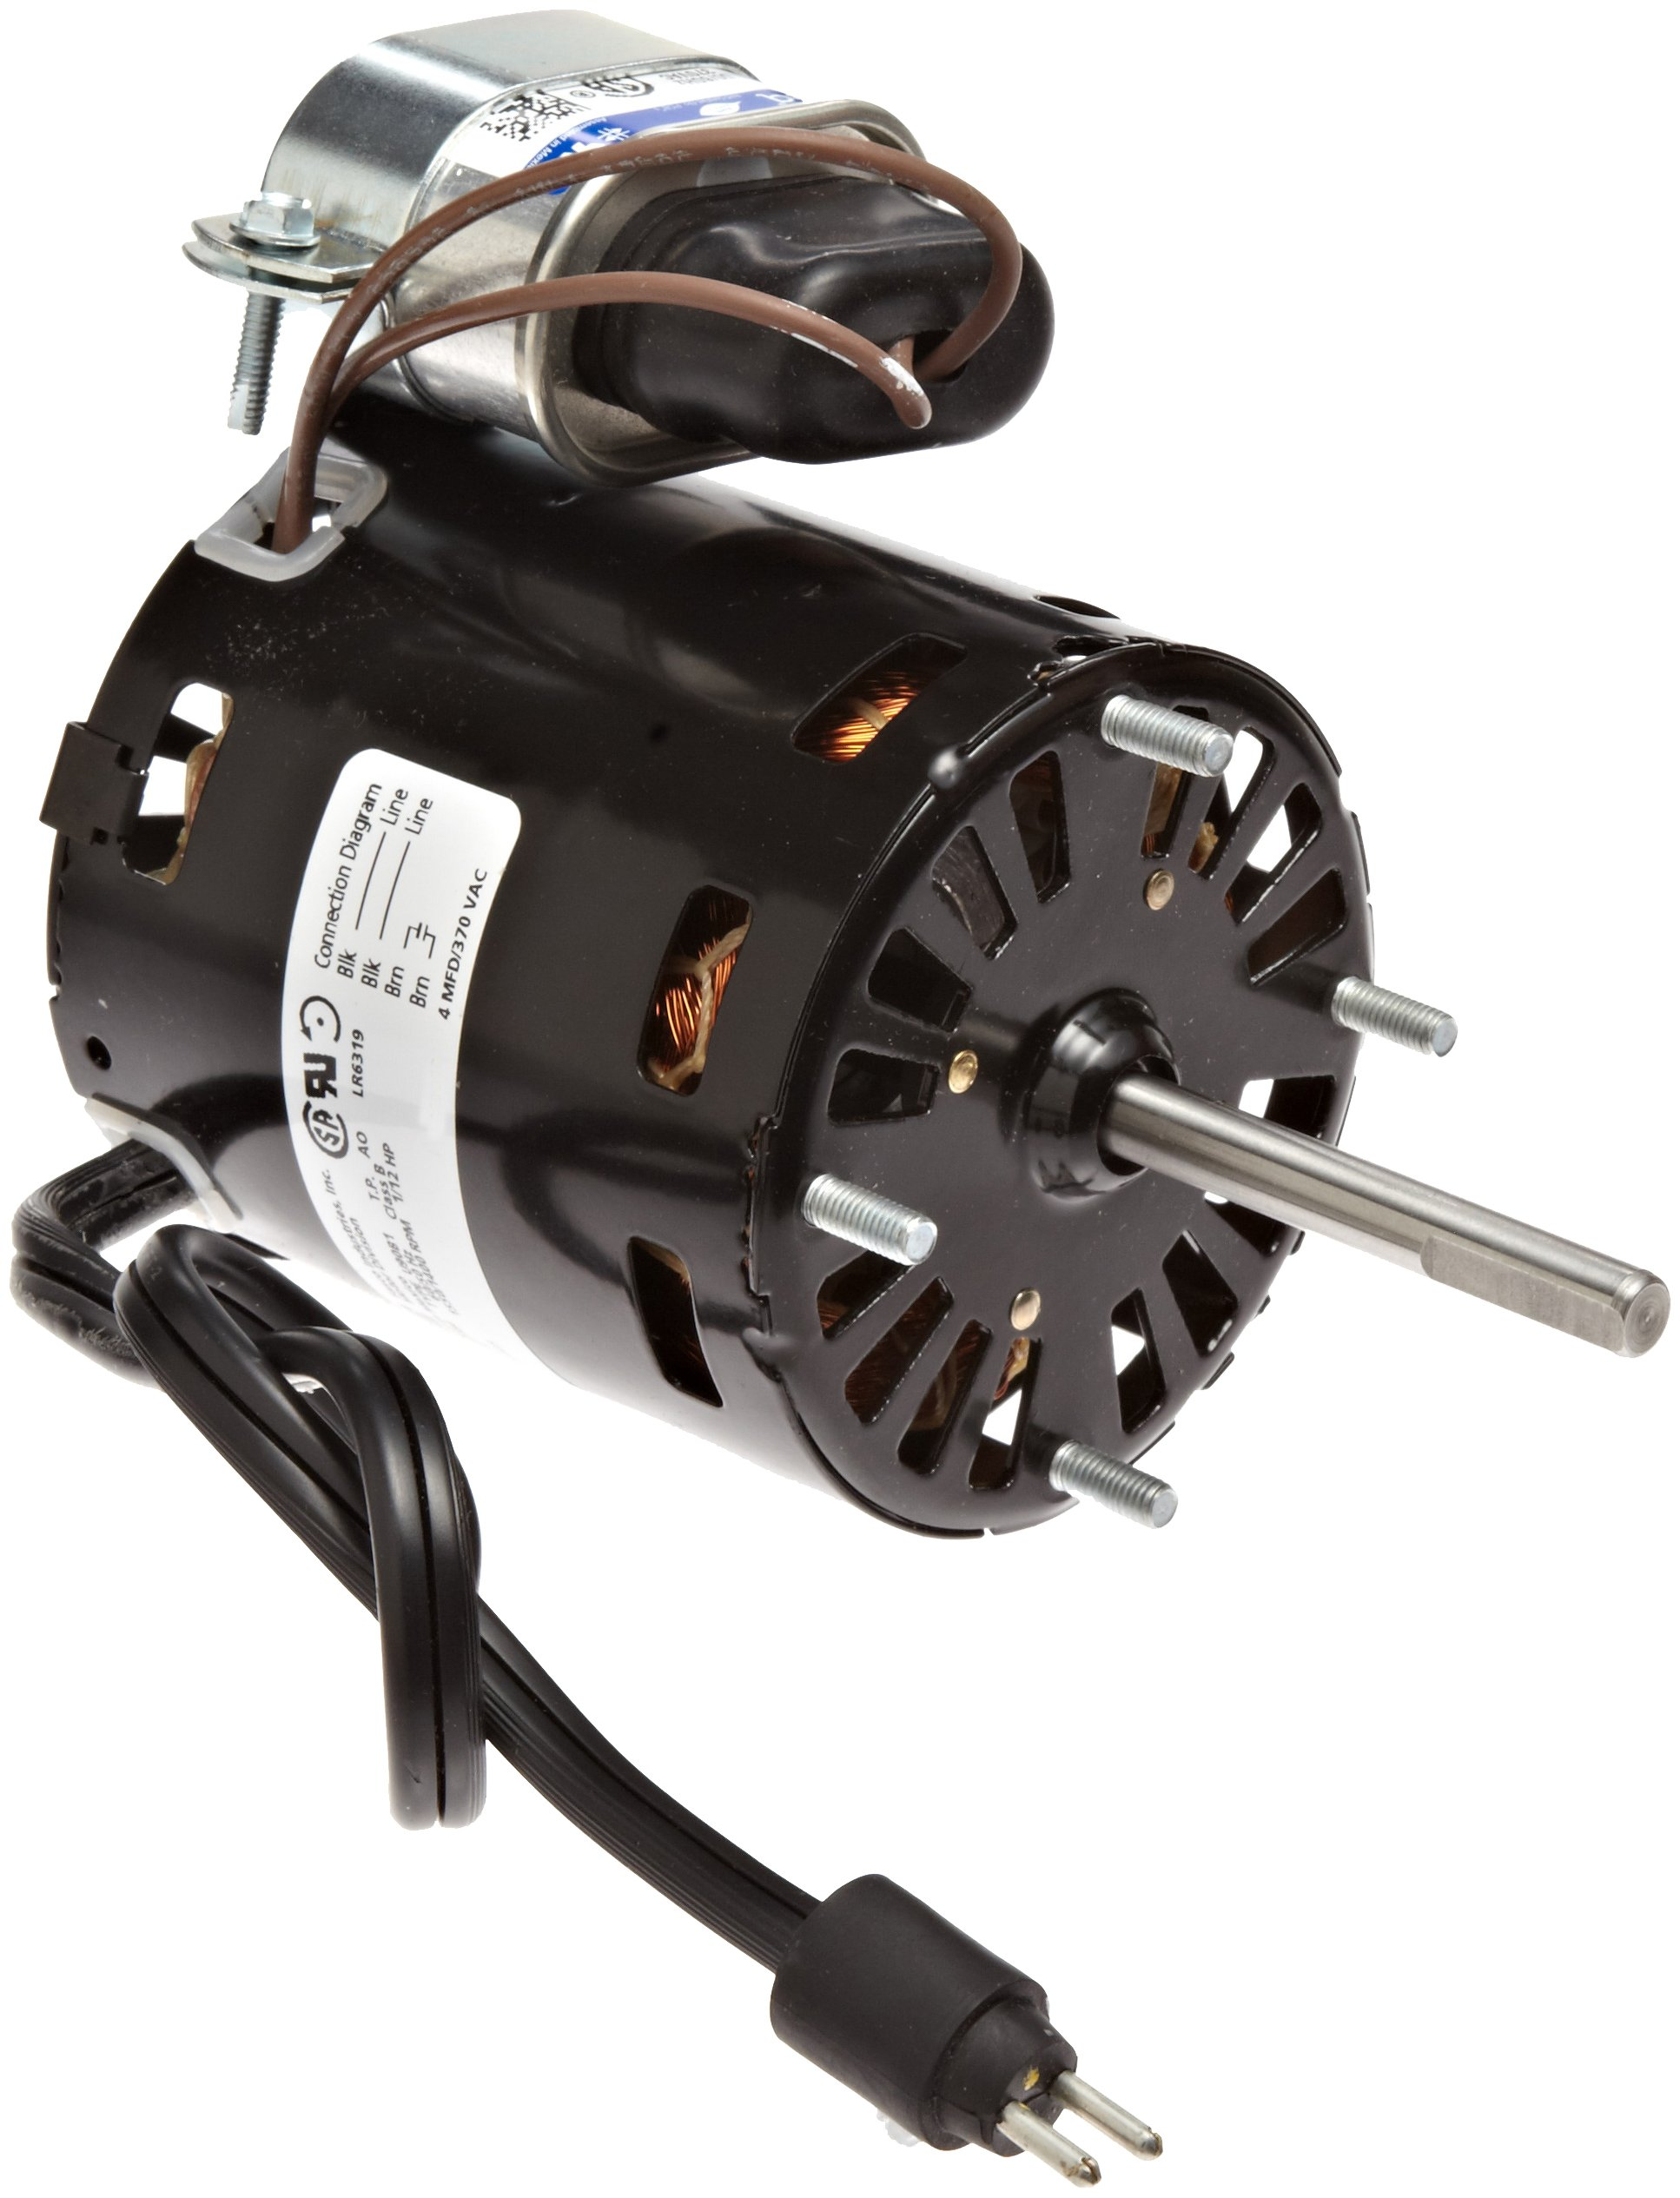 Fasco D1125 3.3'' Frame Open Ventilated Permanent Split Capacitor Evaporator Coil and Refrigeration Fan Motor withSleeve Bearing, 1/12HP, 1550rpm, 208-230V, 60Hz, 0.5 amps